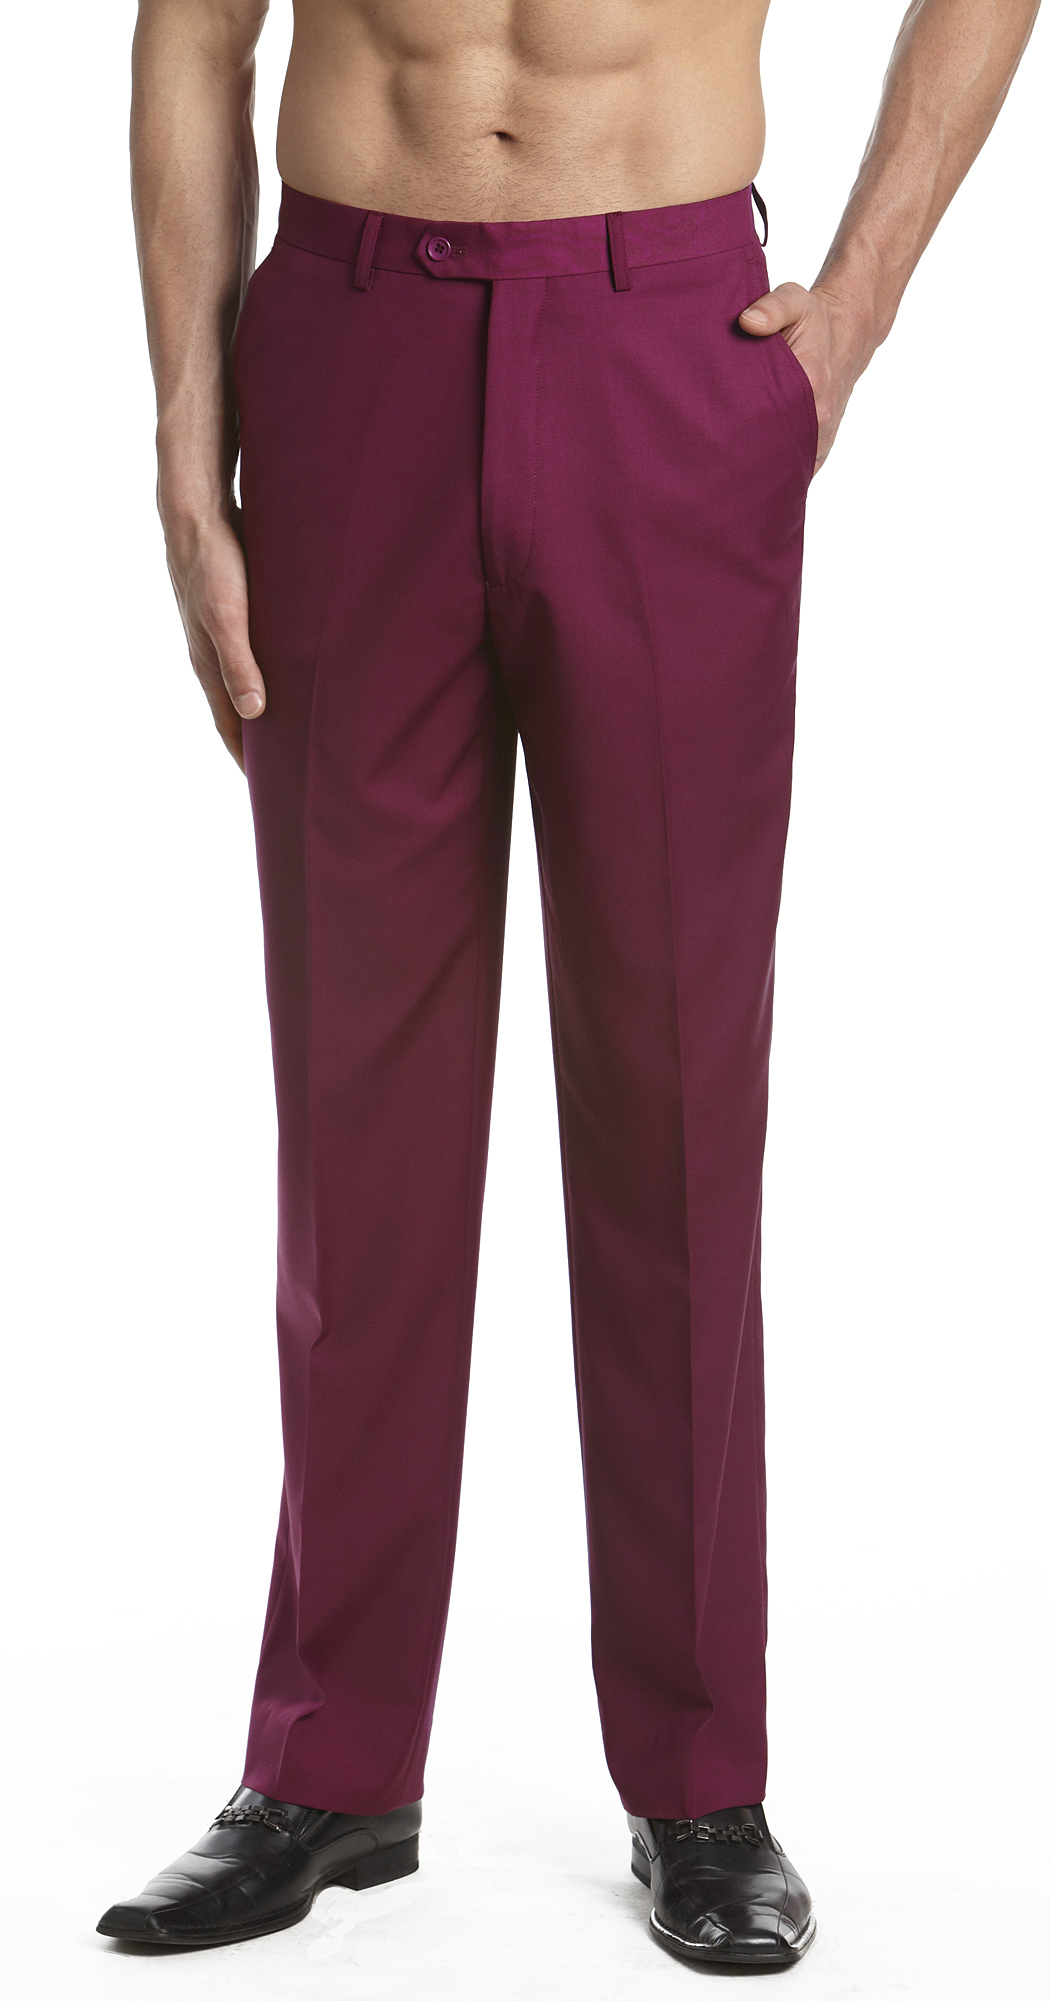 Shop for men's Dress Pants online at reasonarchivessx.cf Browse the latest Pants styles for men from Jos. A Bank. FREE shipping on orders over $